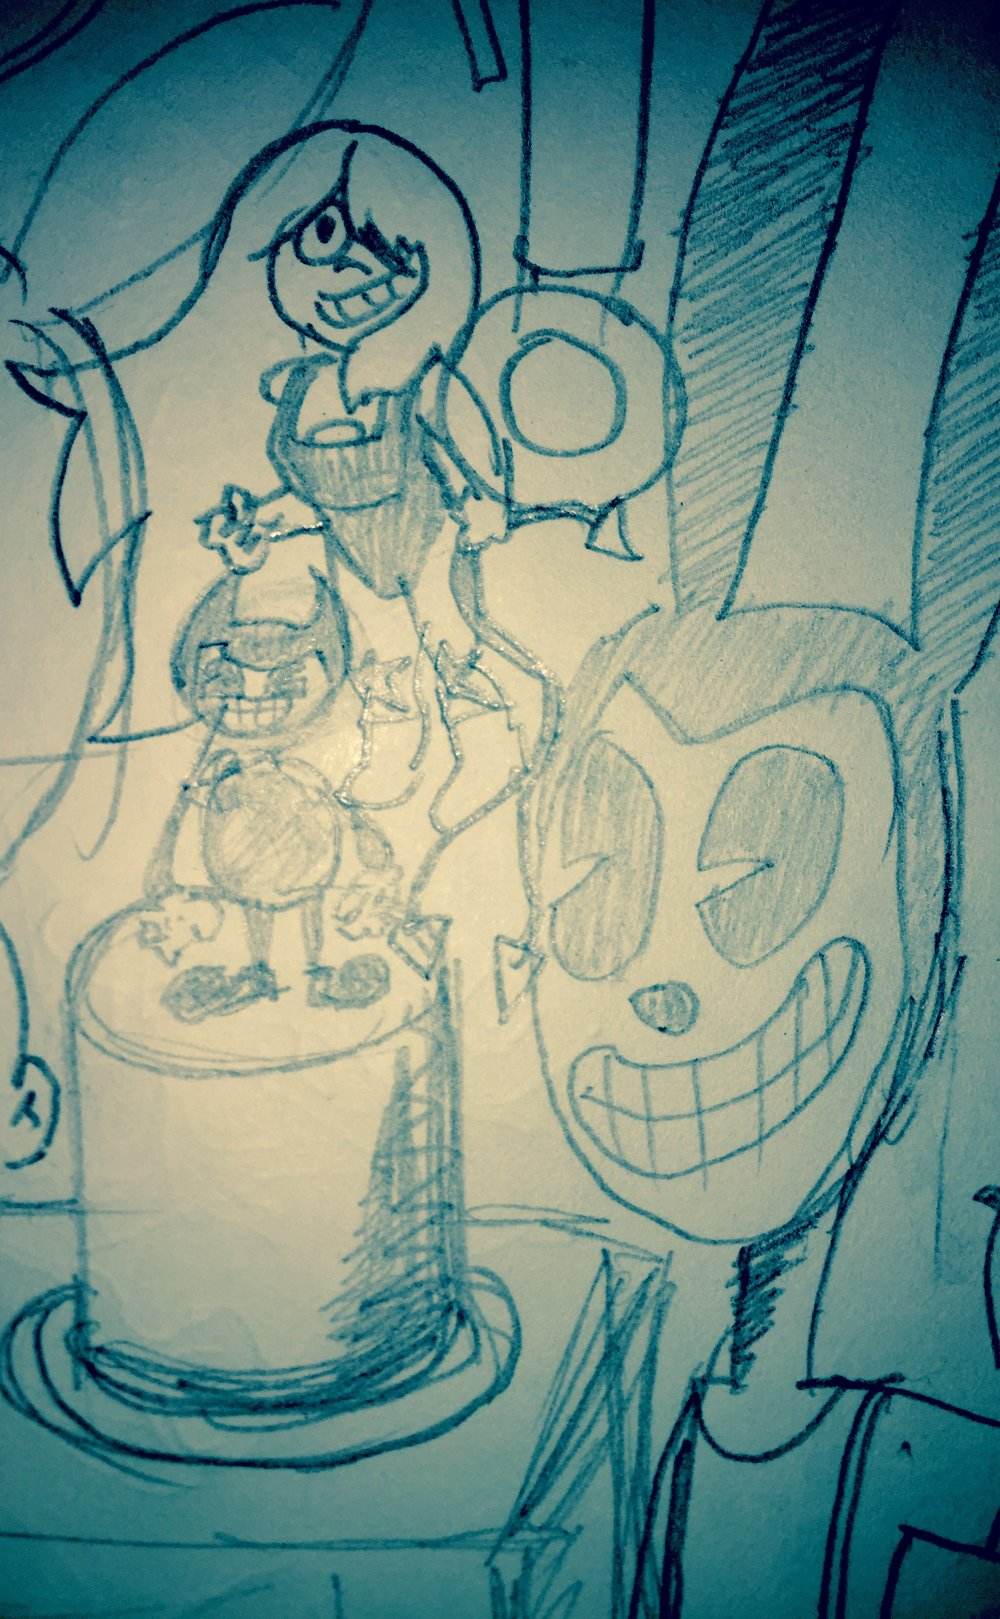 Amethyst and Bendy along with a creepy 1920's bunny in suspenders cartoon dude.